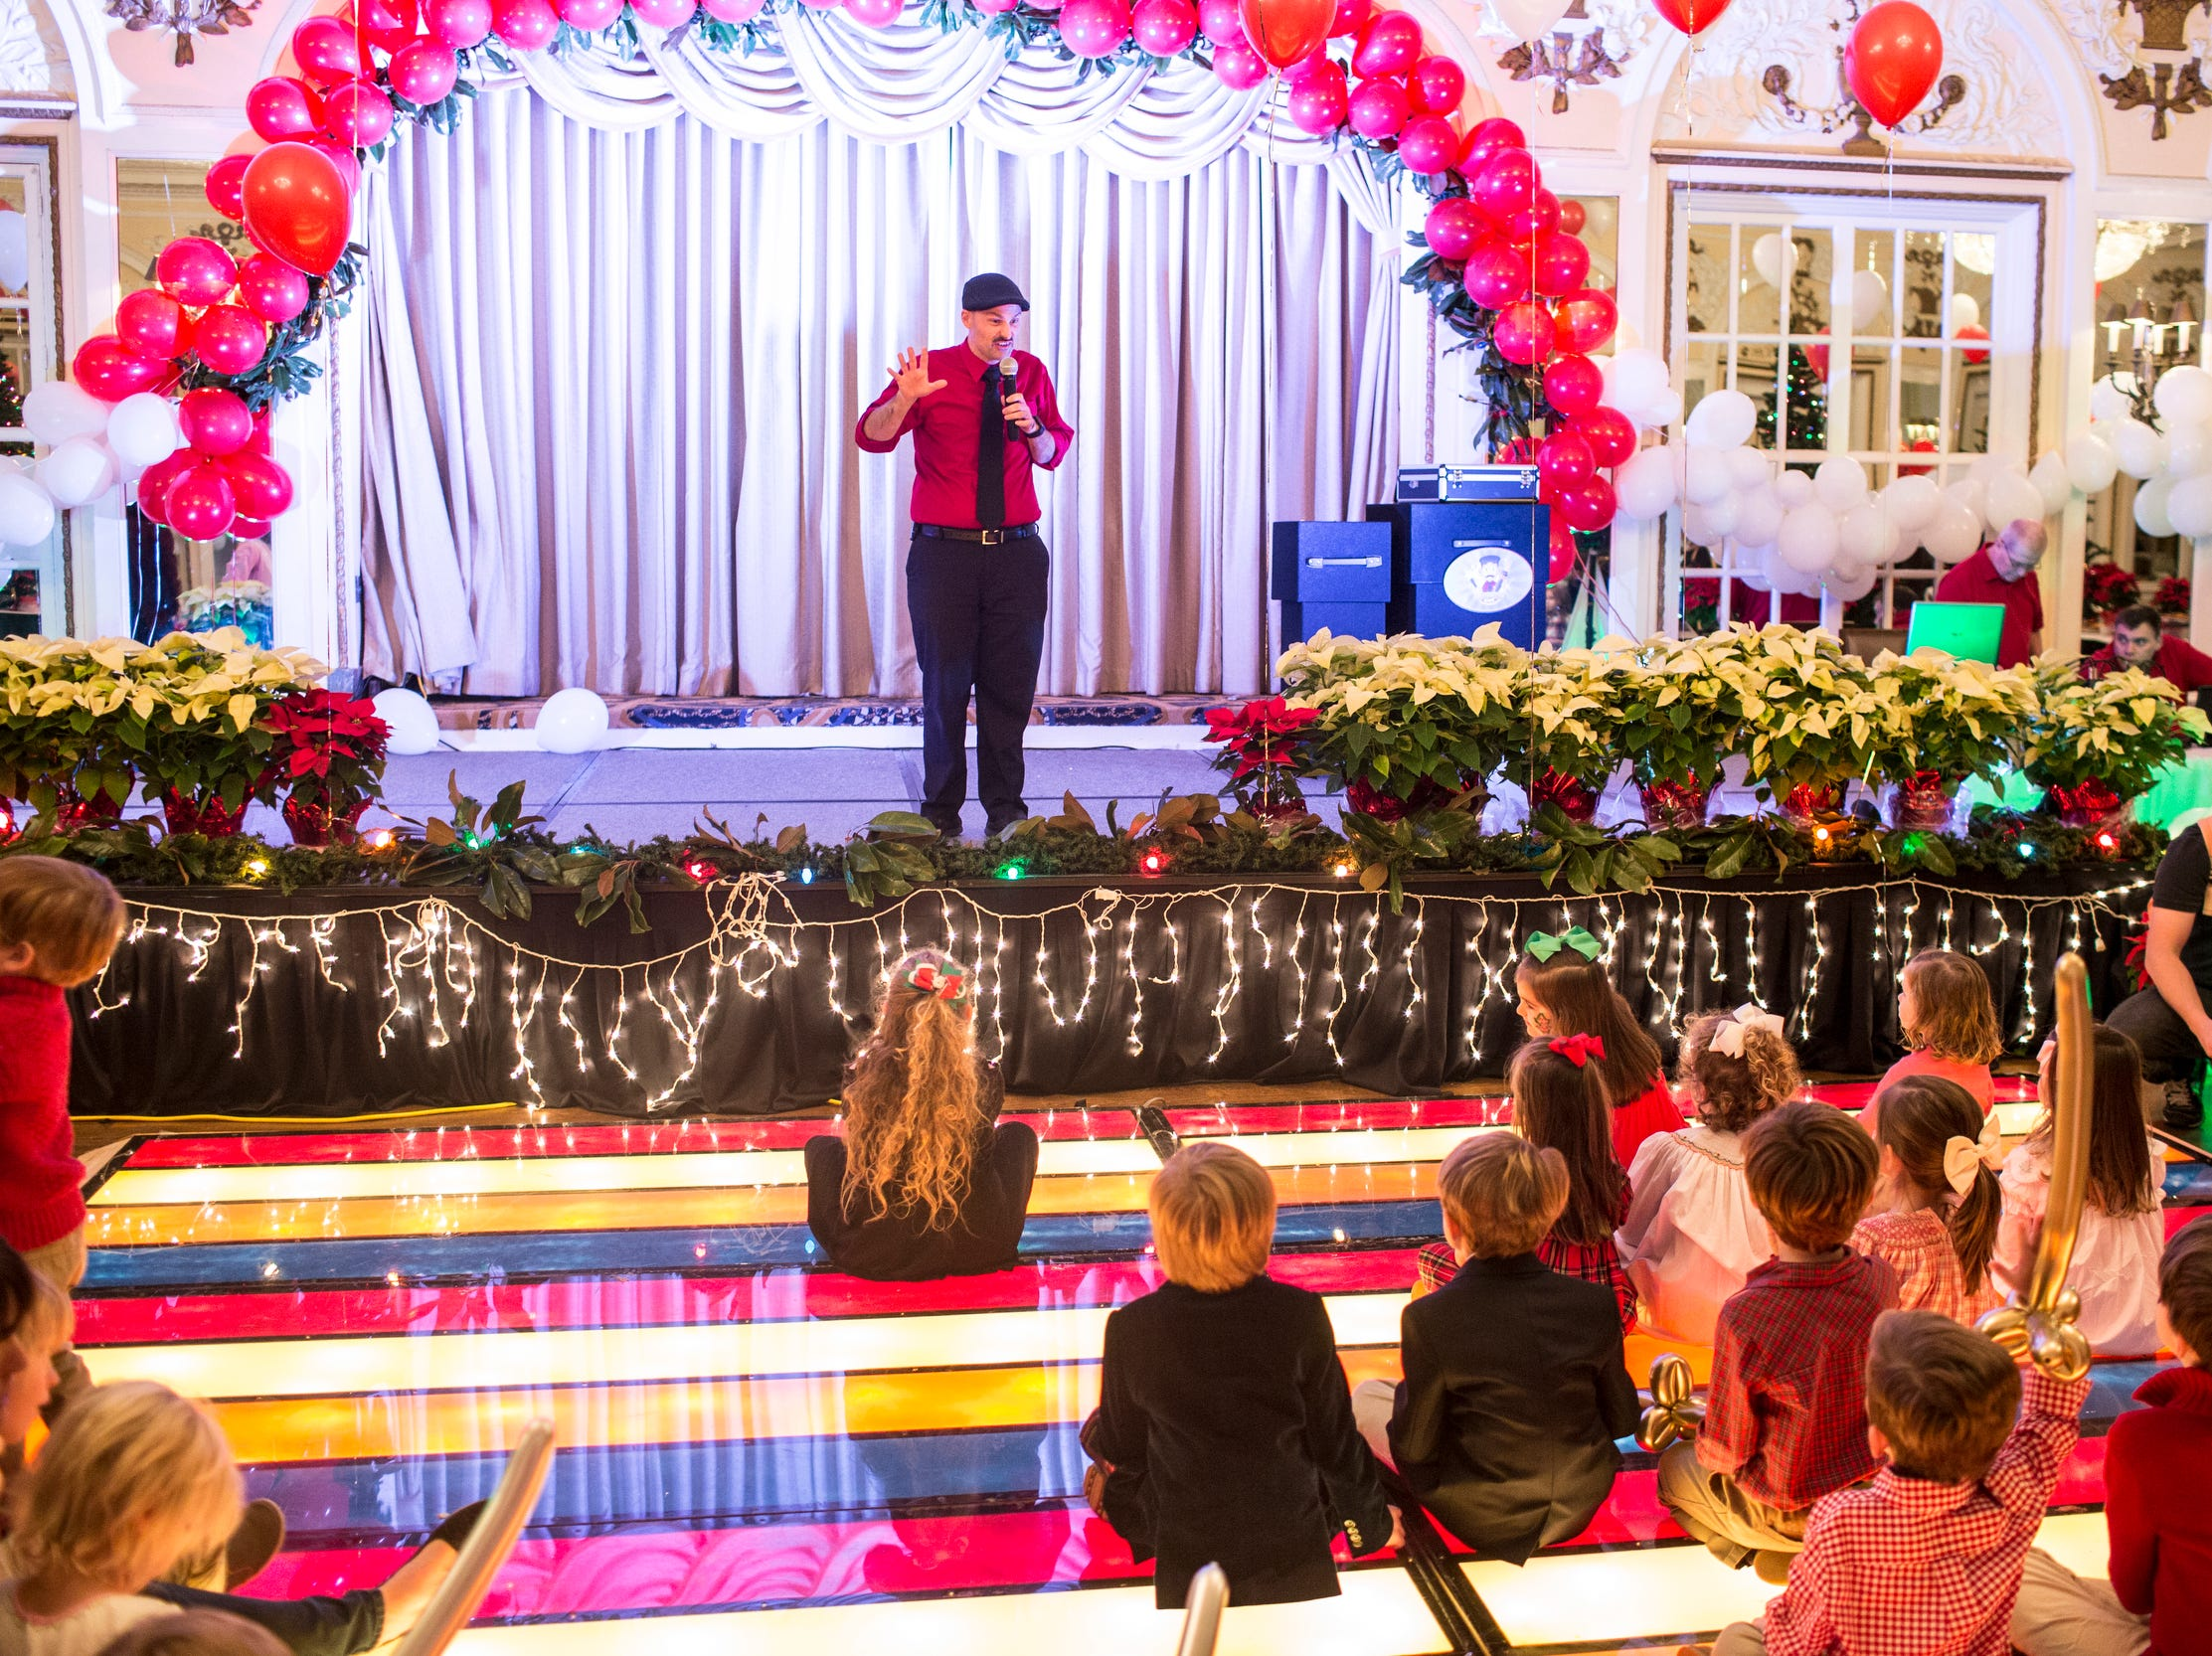 December 02 2018 - Kids gathered around for a magic show during the Memphis Jingle Bell Ball Holiday Cookie Party inside of the Continental Ballroom at the Peabody Hotel on Sunday. This was the 30th anniversary of the Jingle Bell Ball.